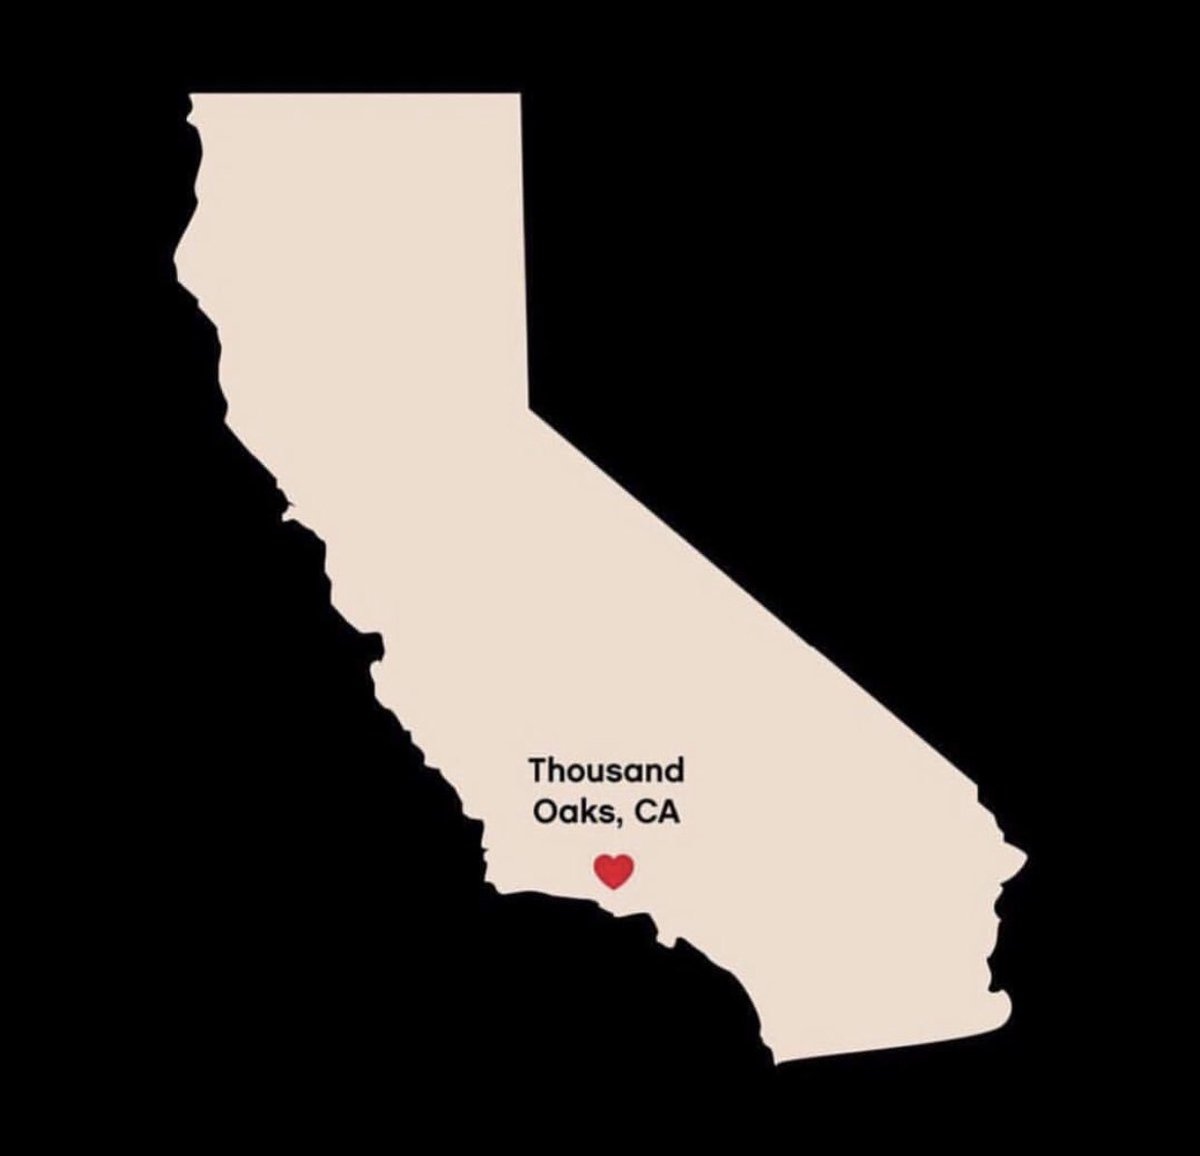 my heart is with you, Thousand Oaks ???? https://t.co/QoGg3kLGrT